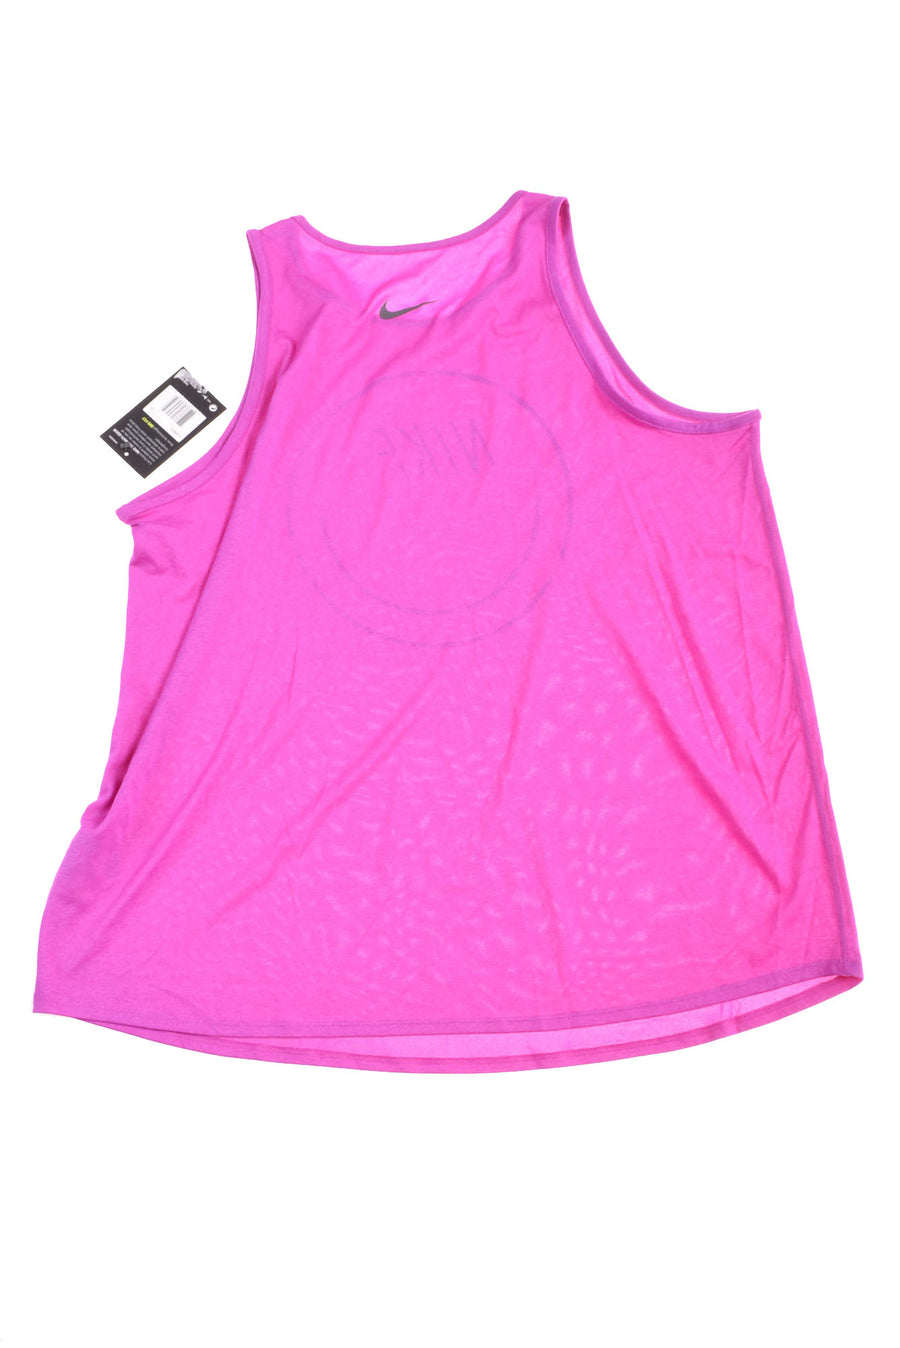 NEW Nike Women's Top 1X Purple